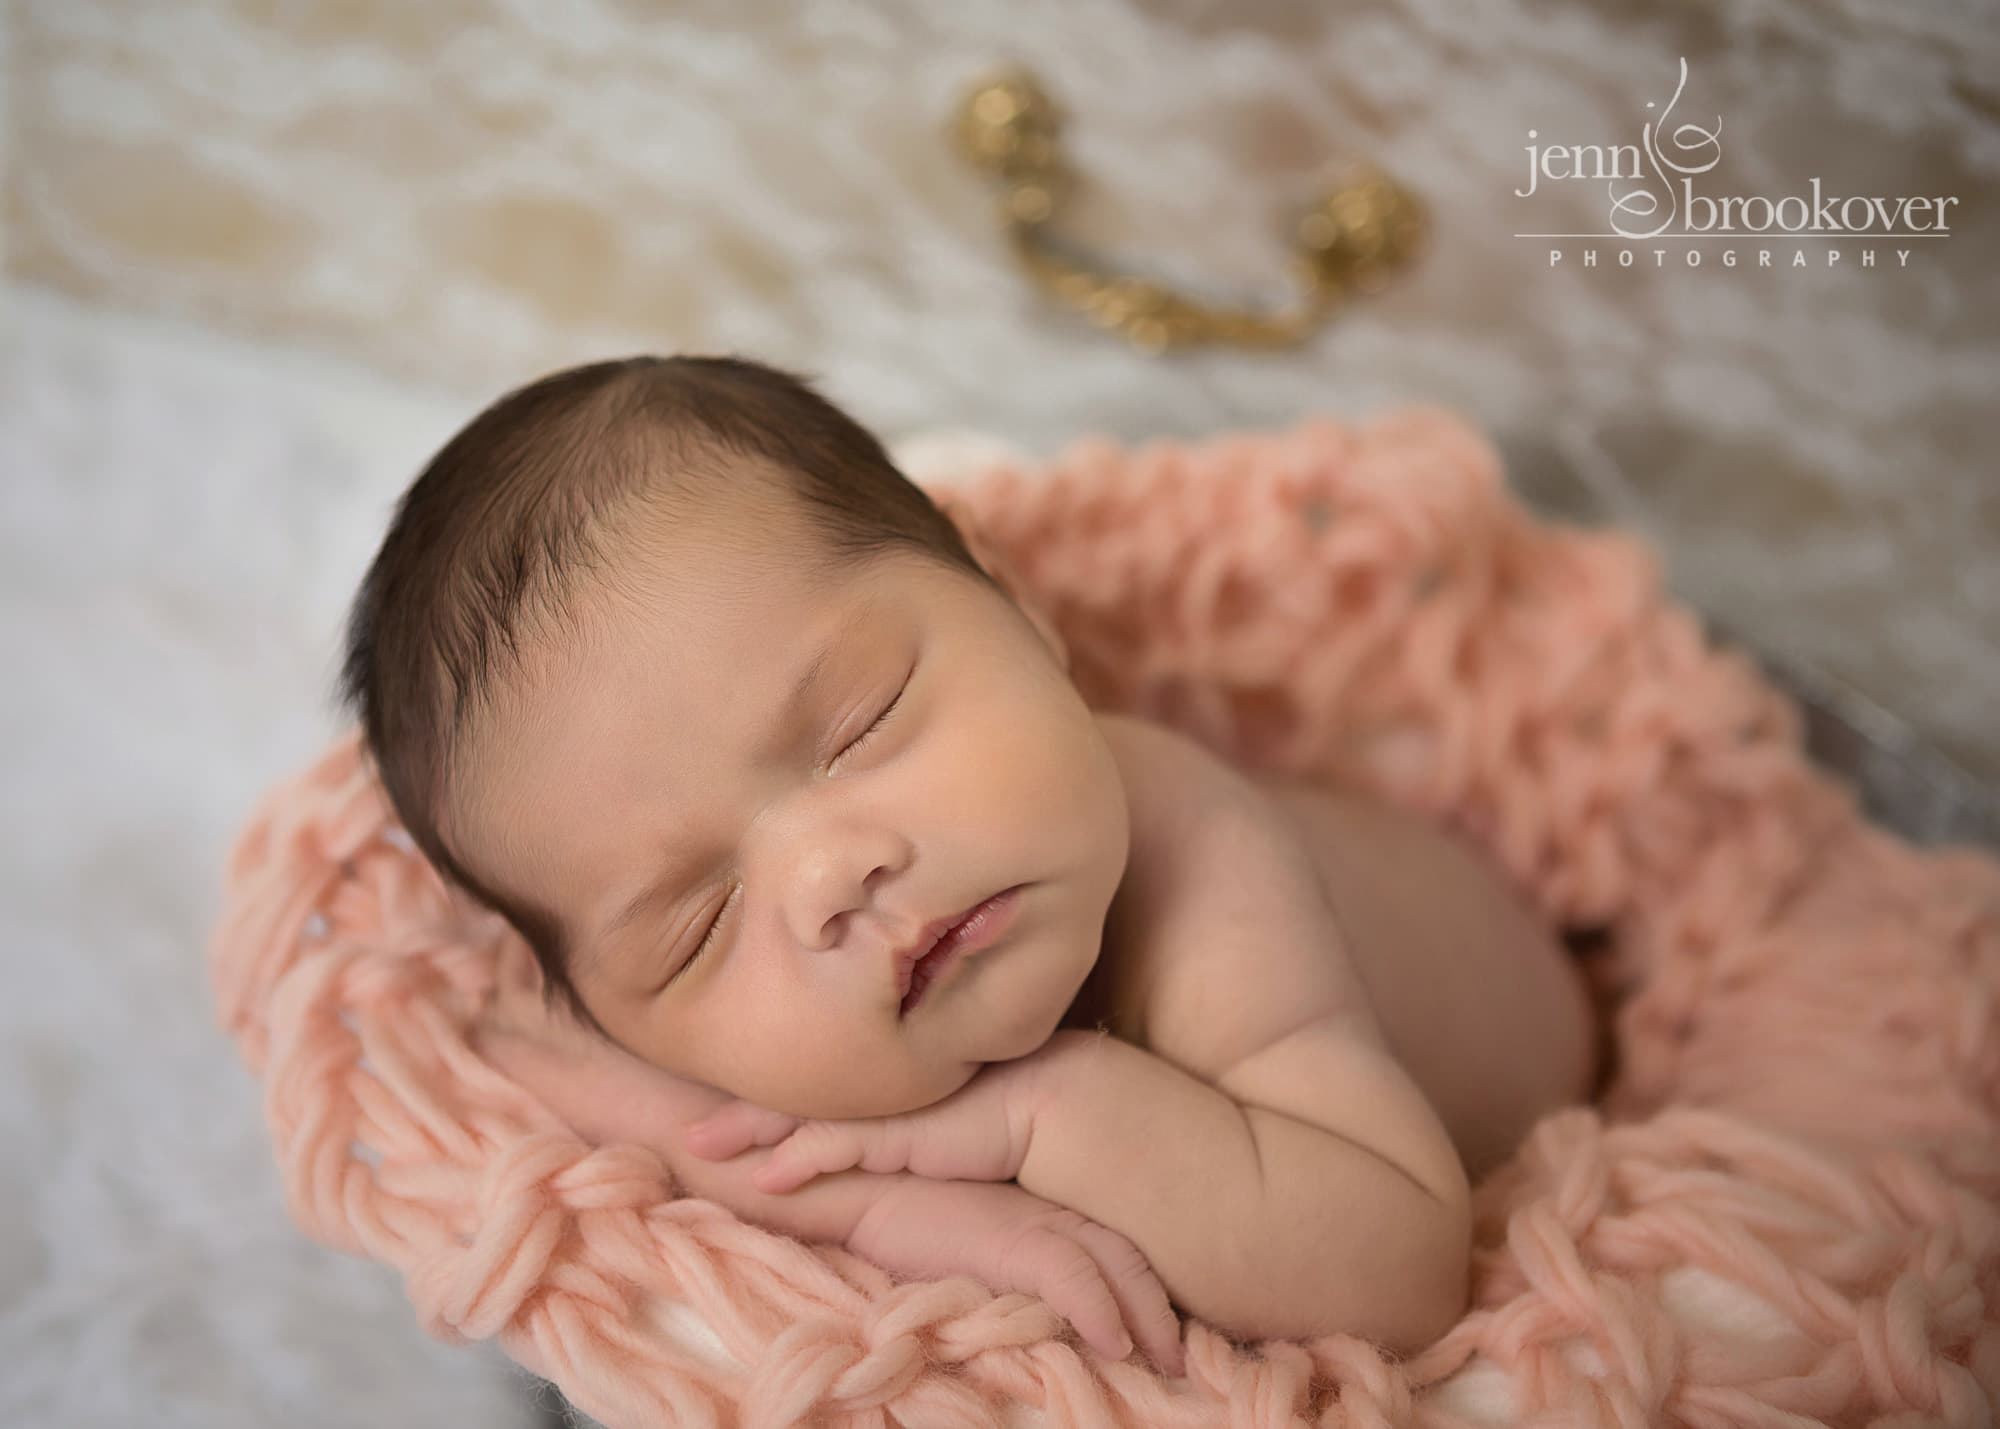 close up of a newborn baby girl in peach blanket sleeping during her photo session with Jenn Brookover in Texas